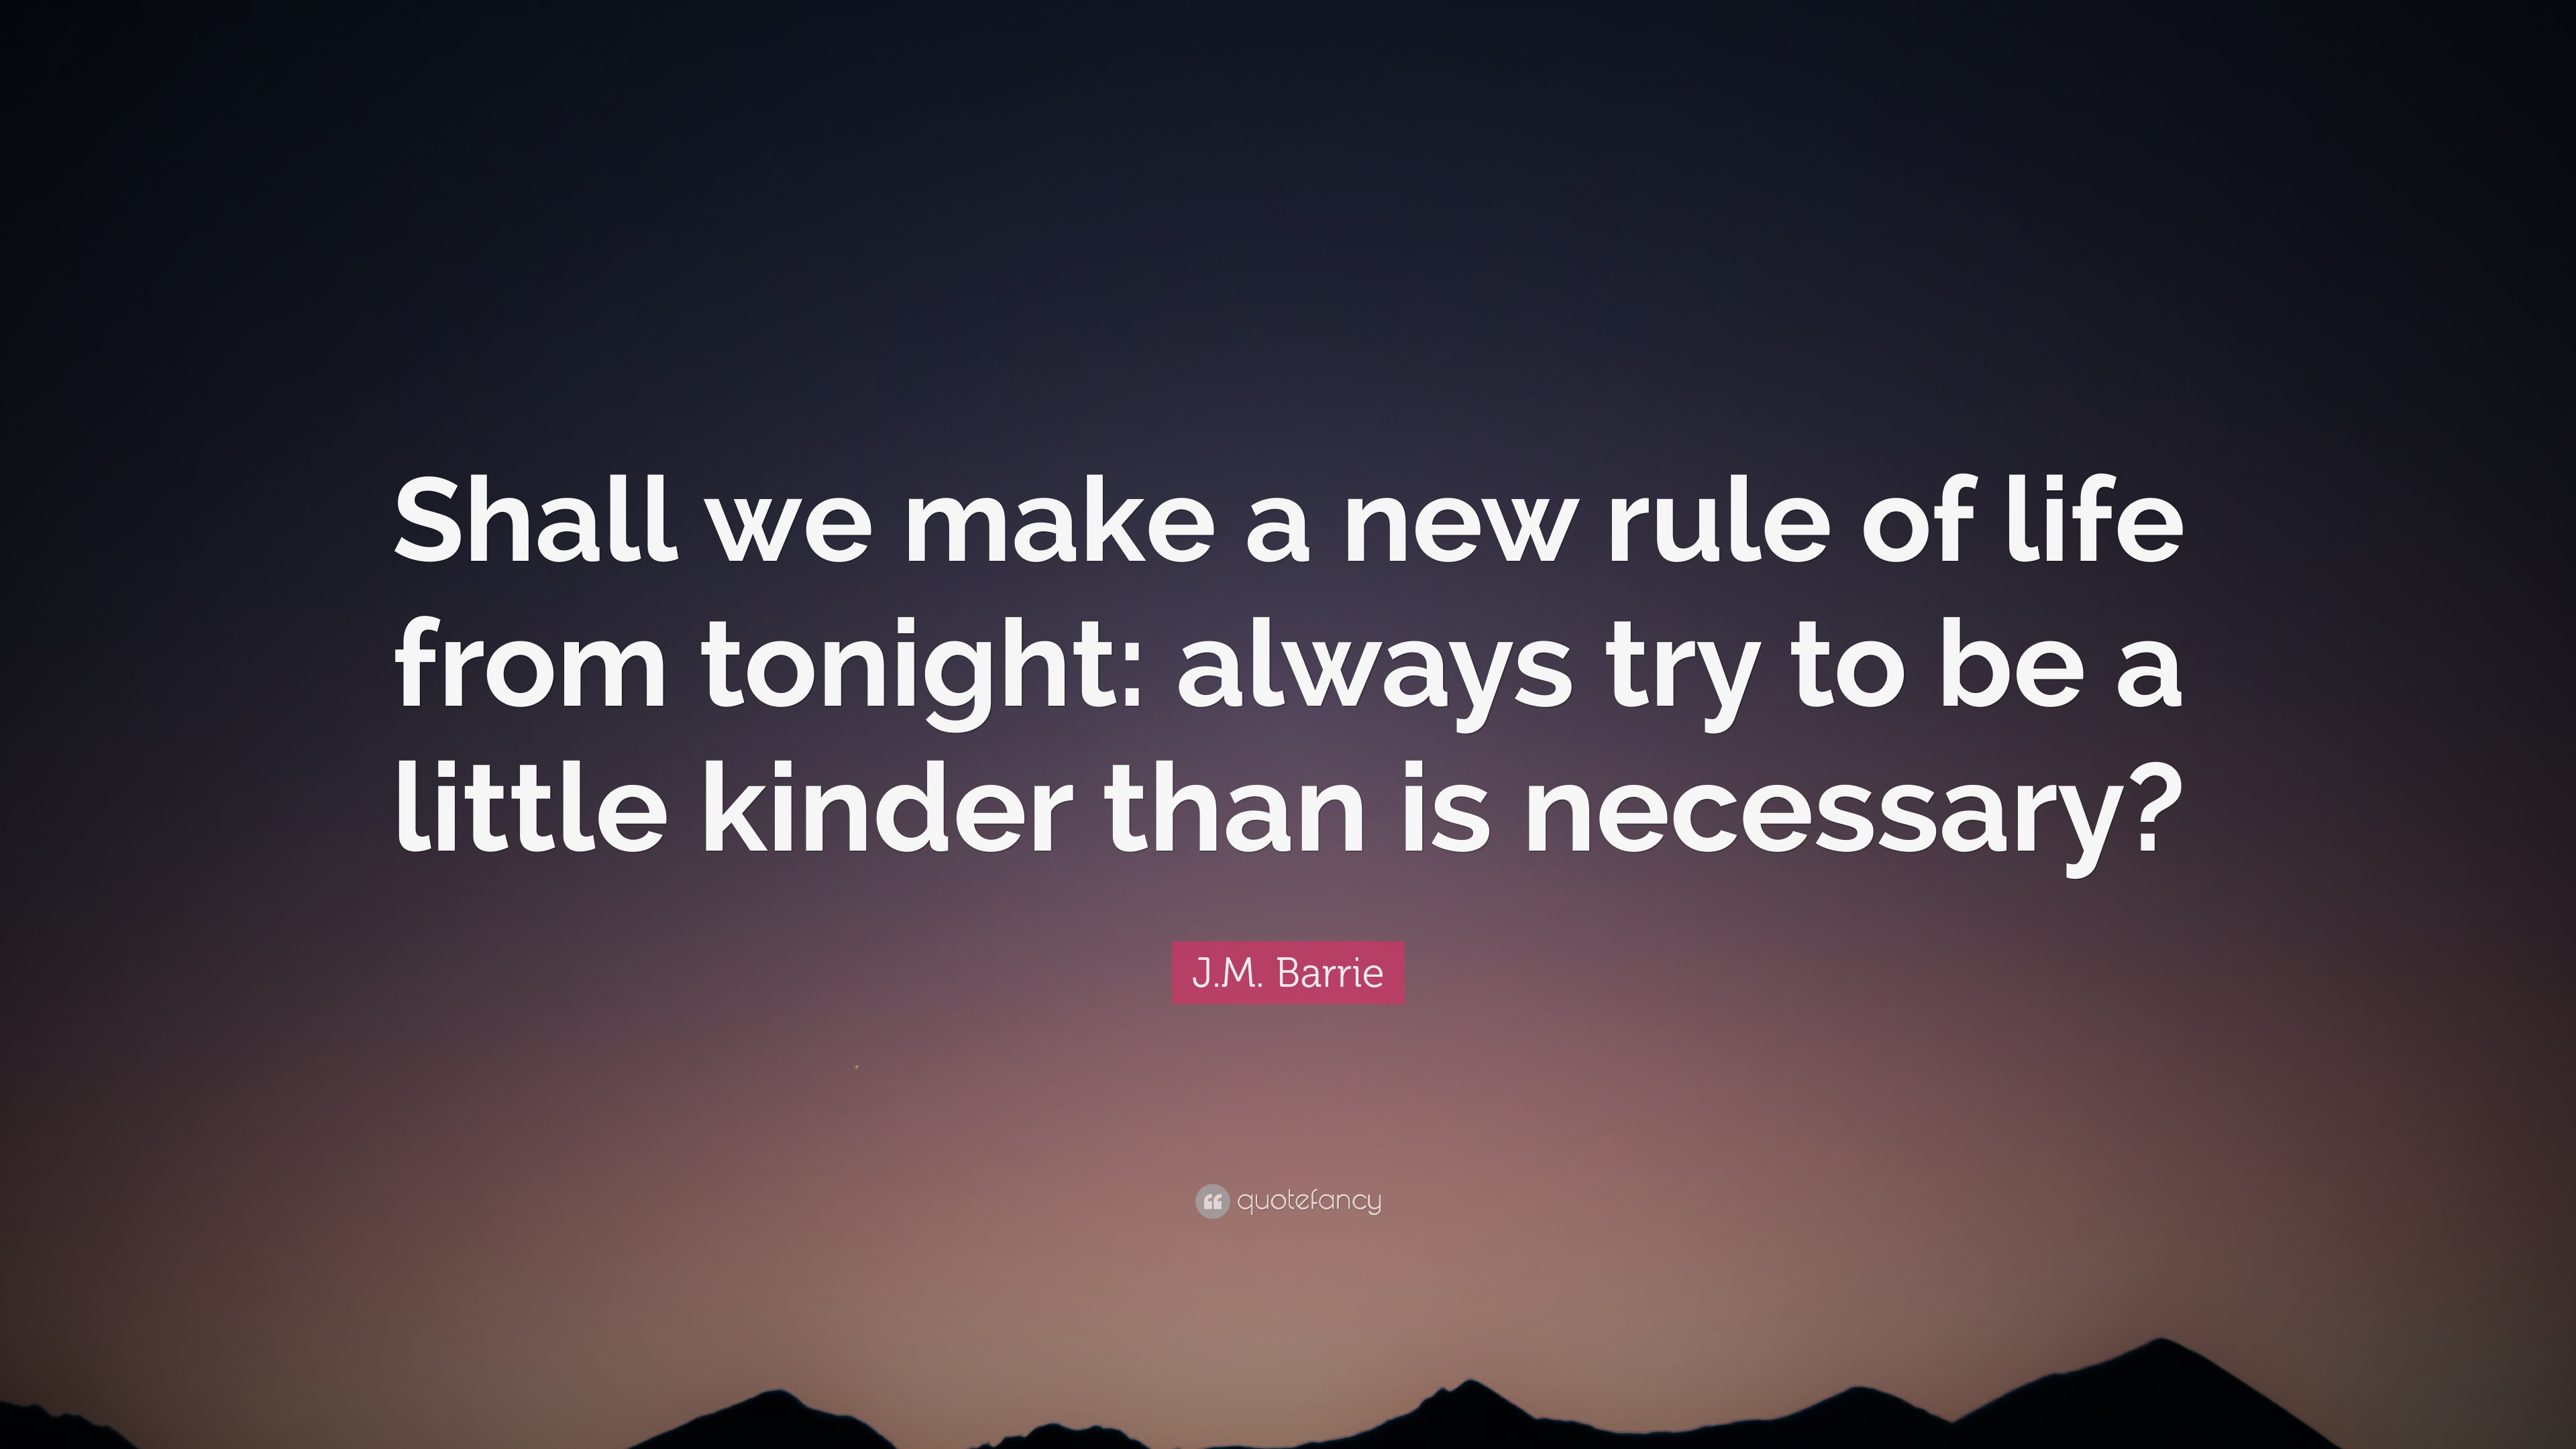 Jm Barrie Quote Shall We Make A New Rule Of Life From Tonight